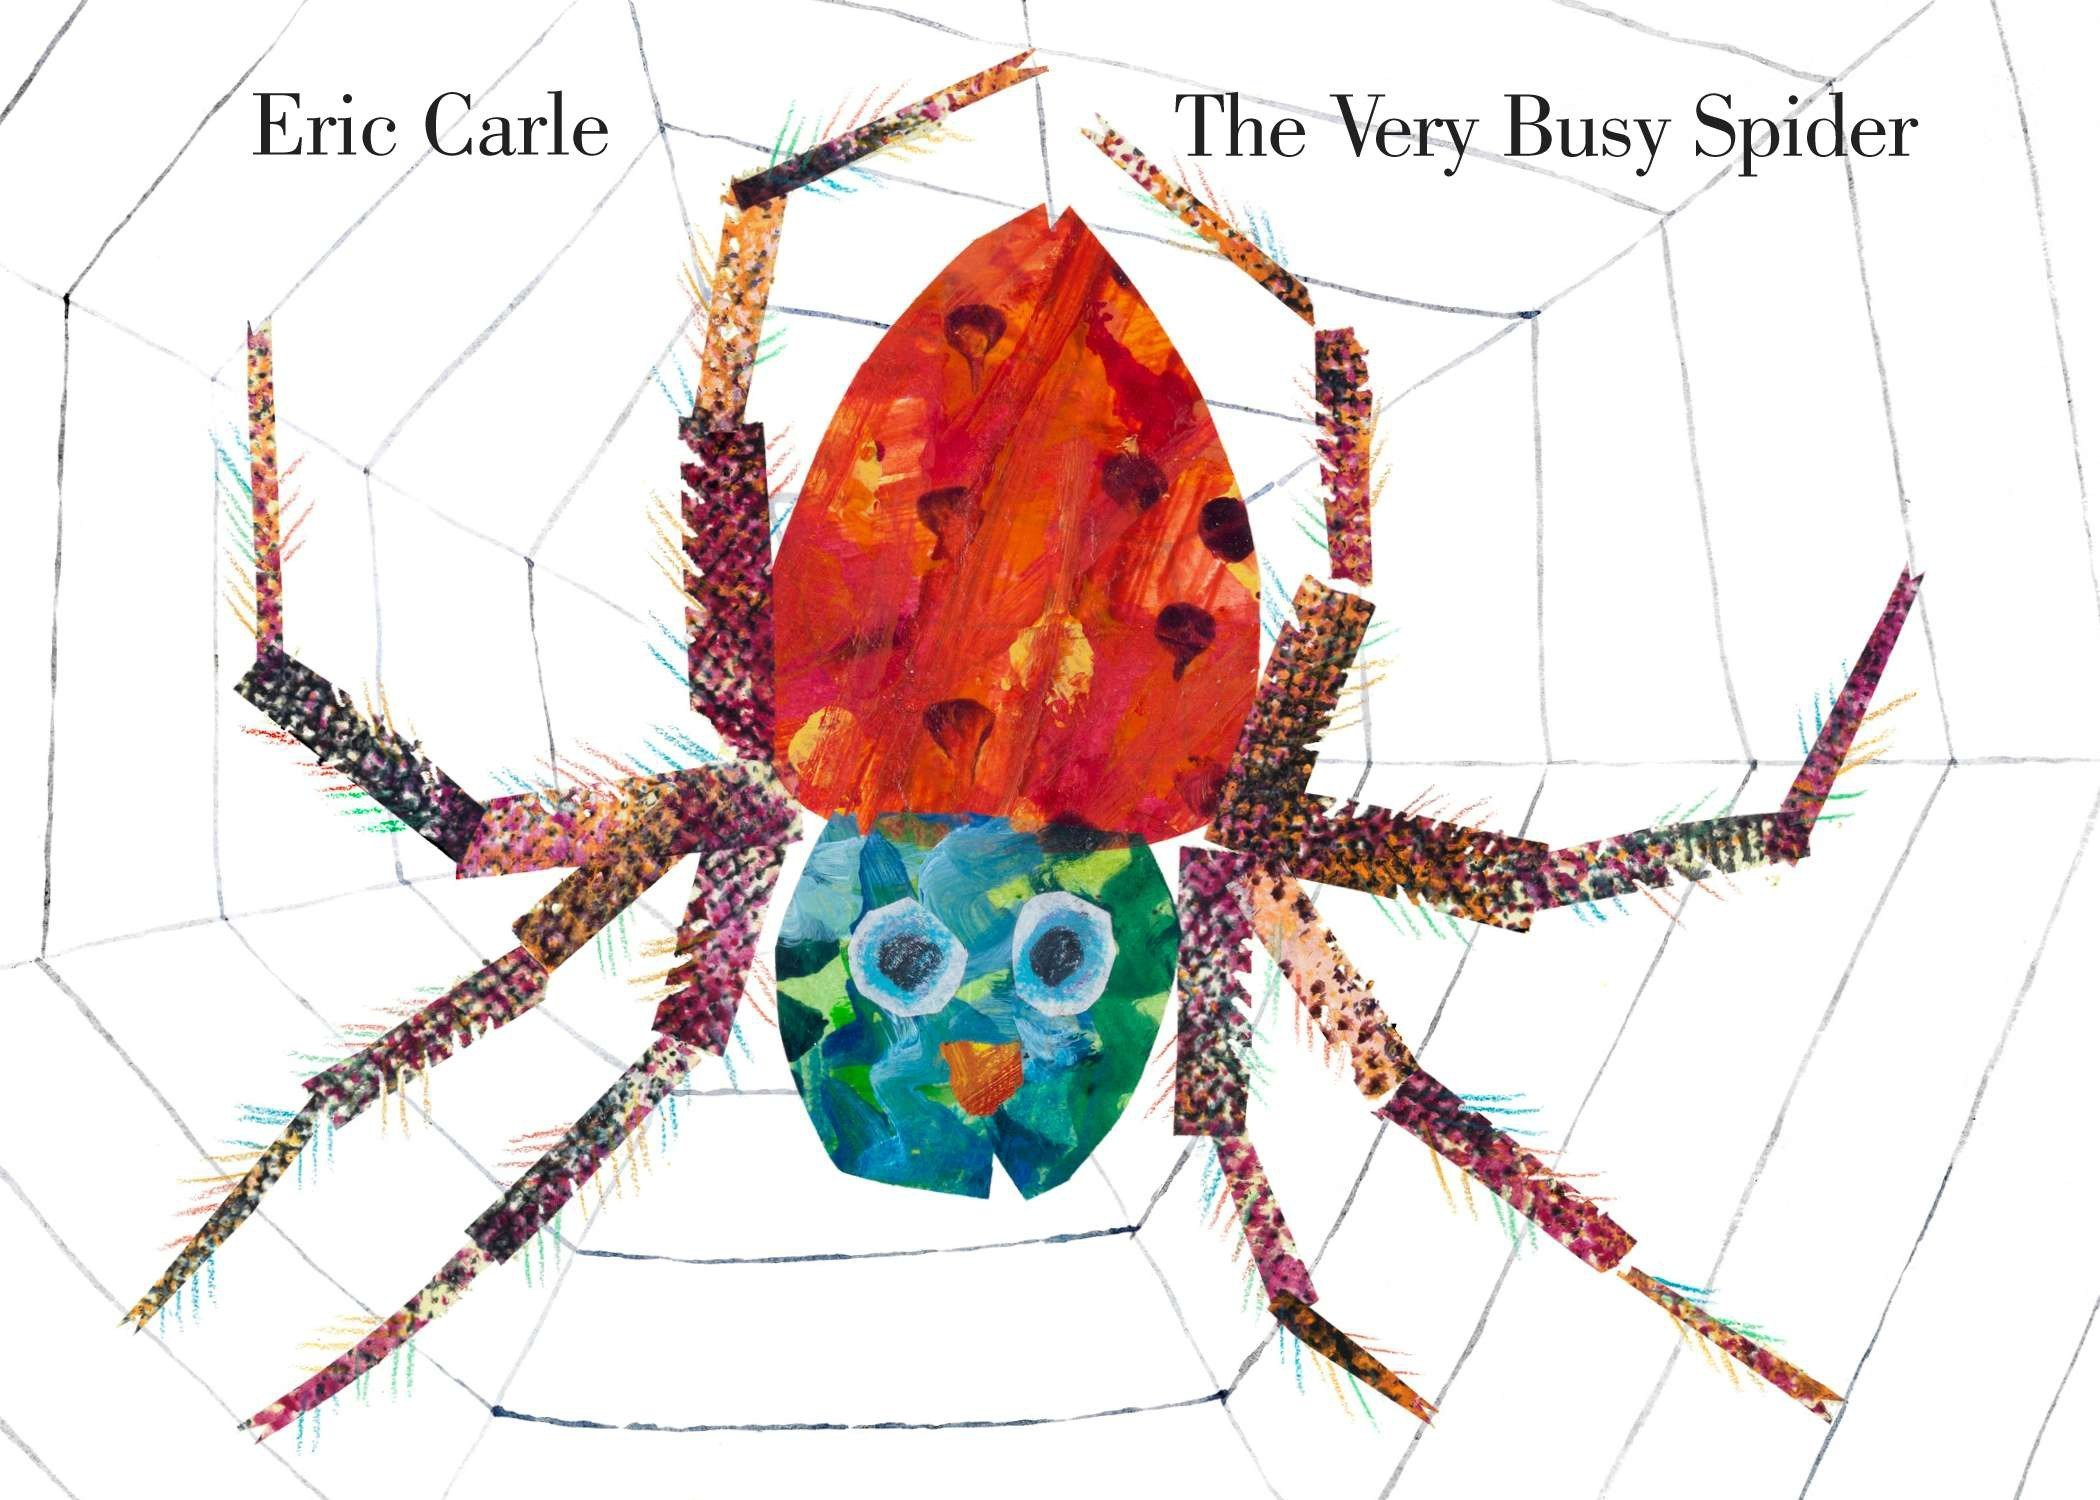 The Very Busy Spider: Carle, Eric: 9780399229190: Amazon.com: Books